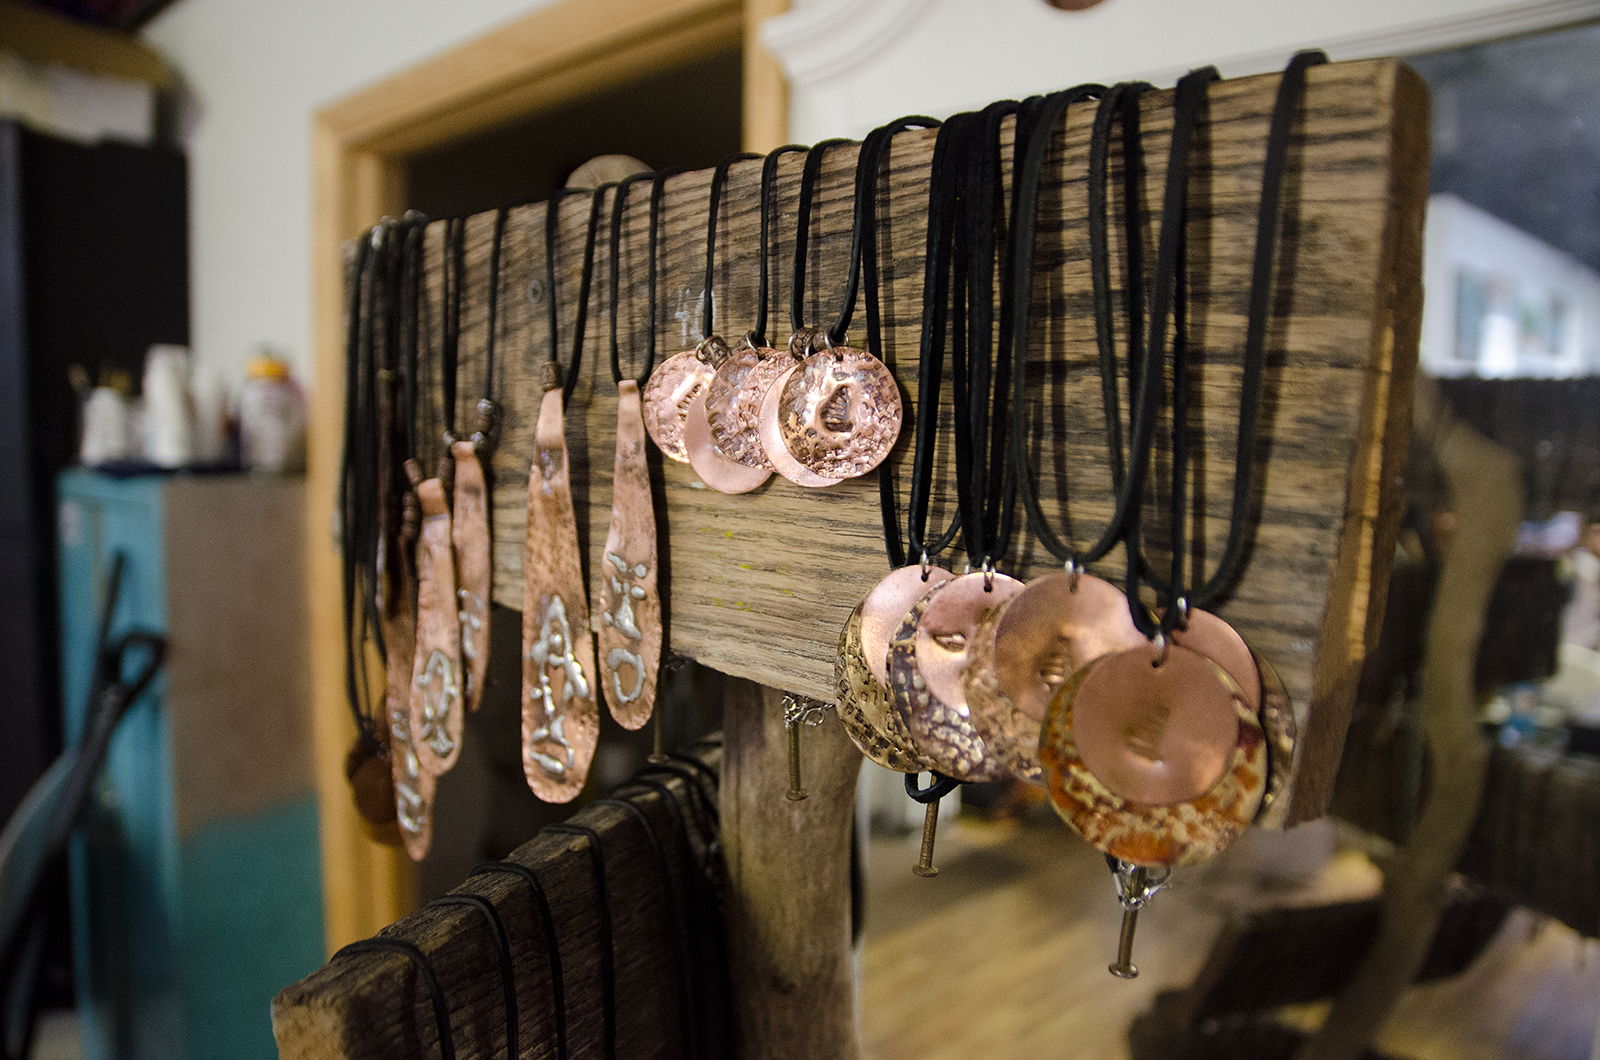 Handcrafted metal necklaces at Nativibes.